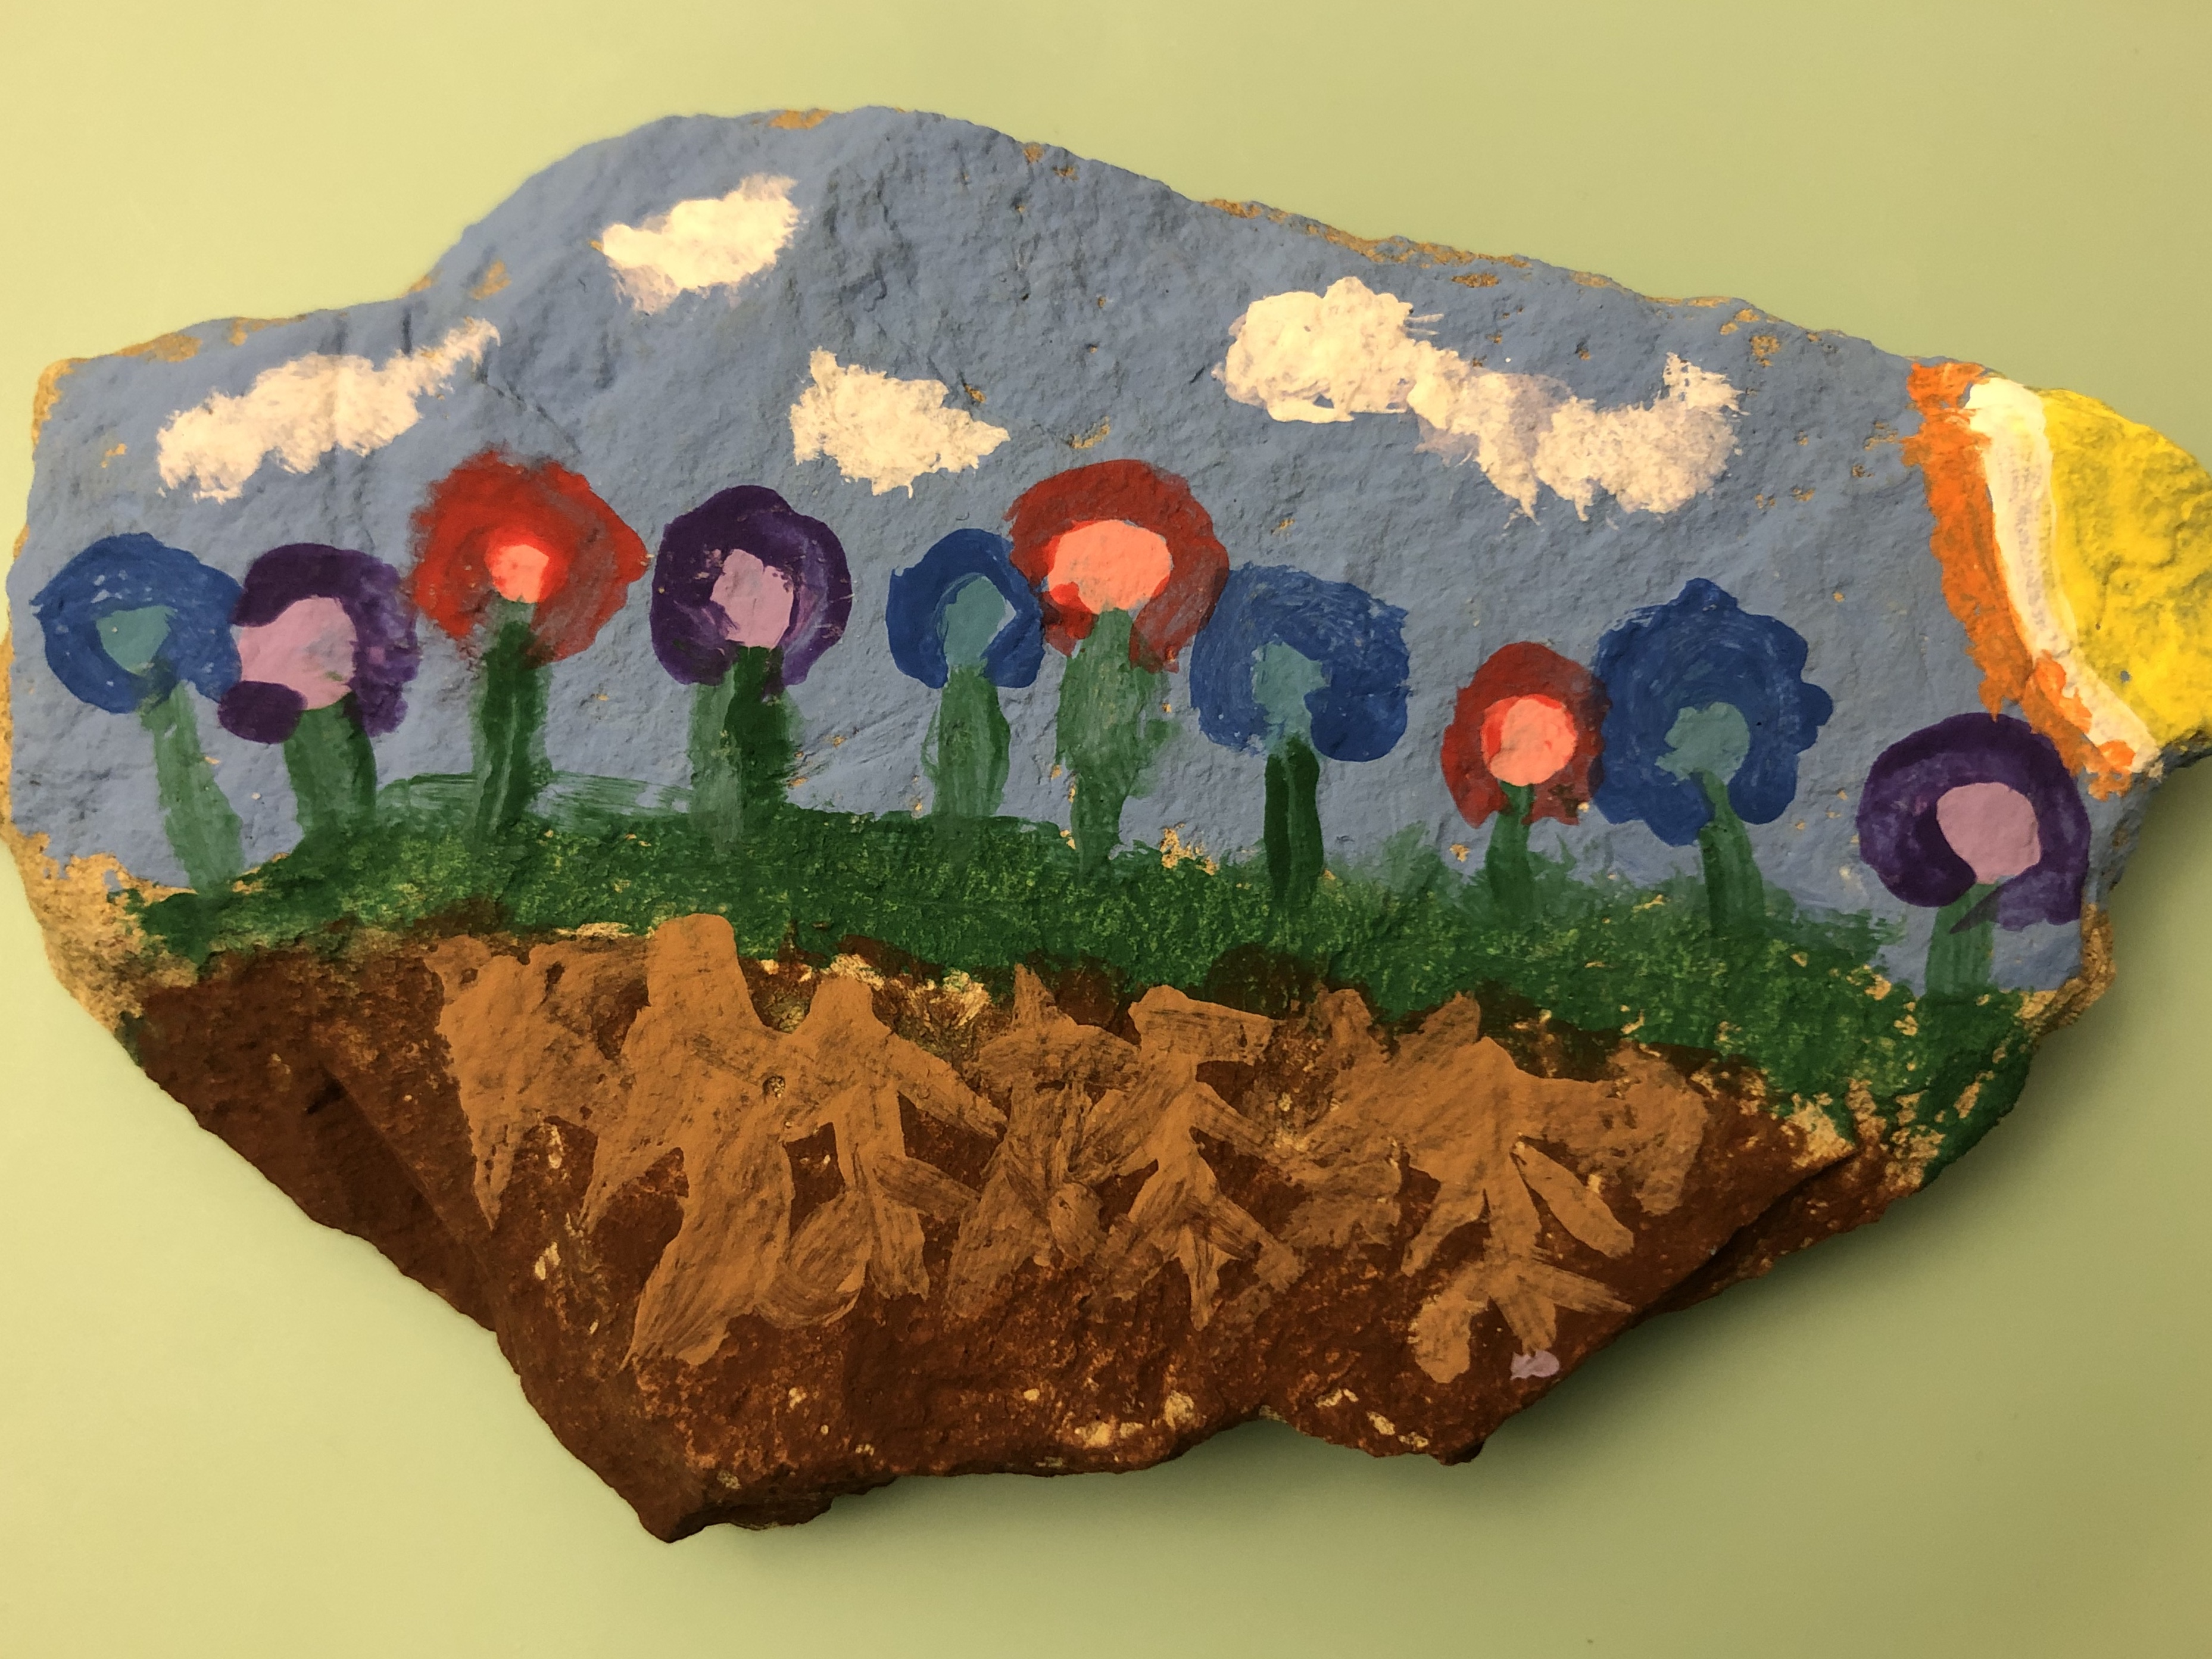 Painted Rock by Emma R. - Age 7